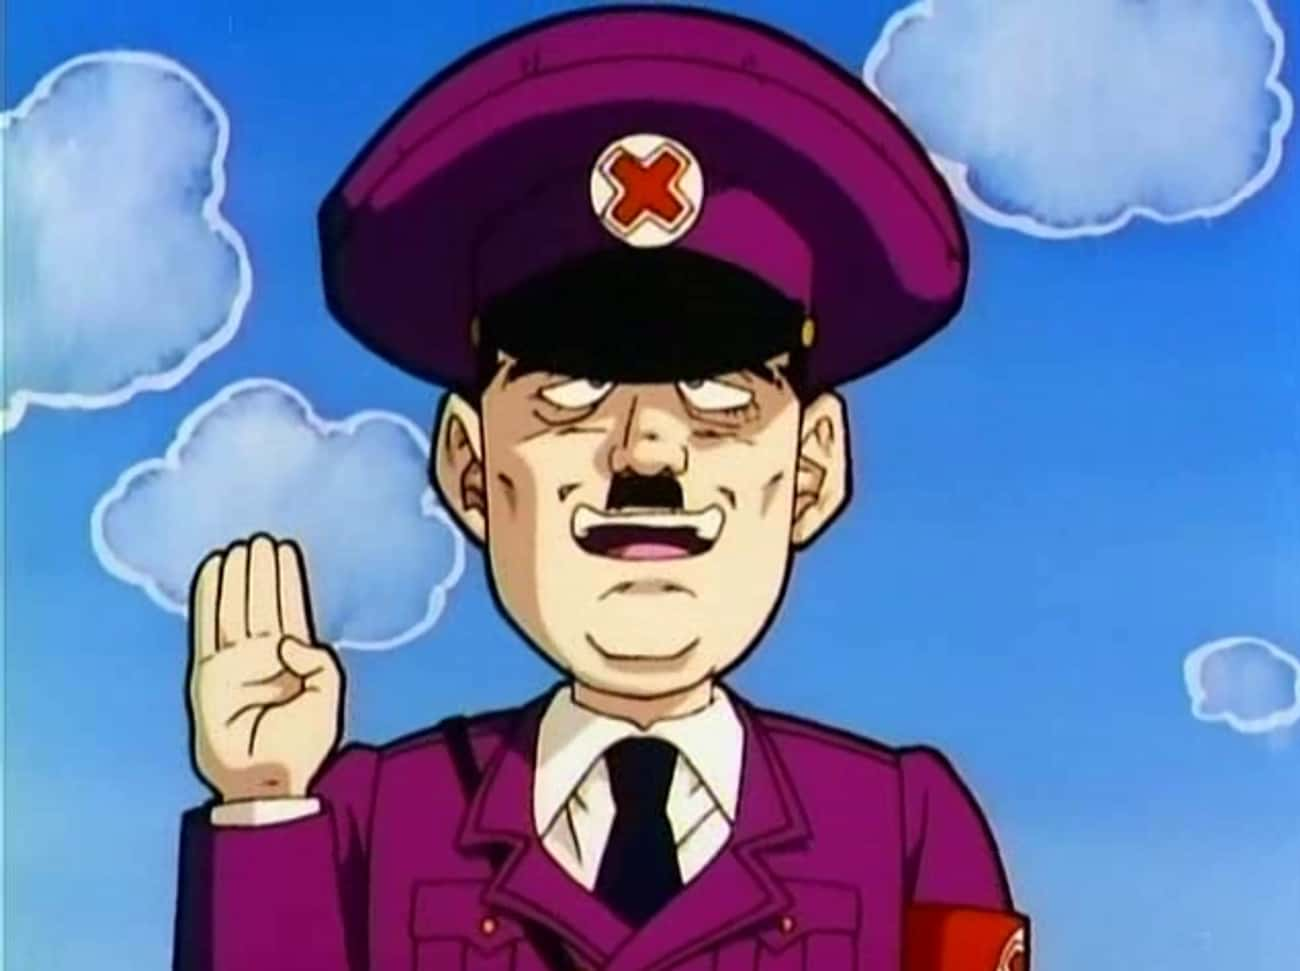 'Dragon Ball Z: Fusion Reb is listed (or ranked) 1 on the list 16 Times Hitler Showed Up In Anime